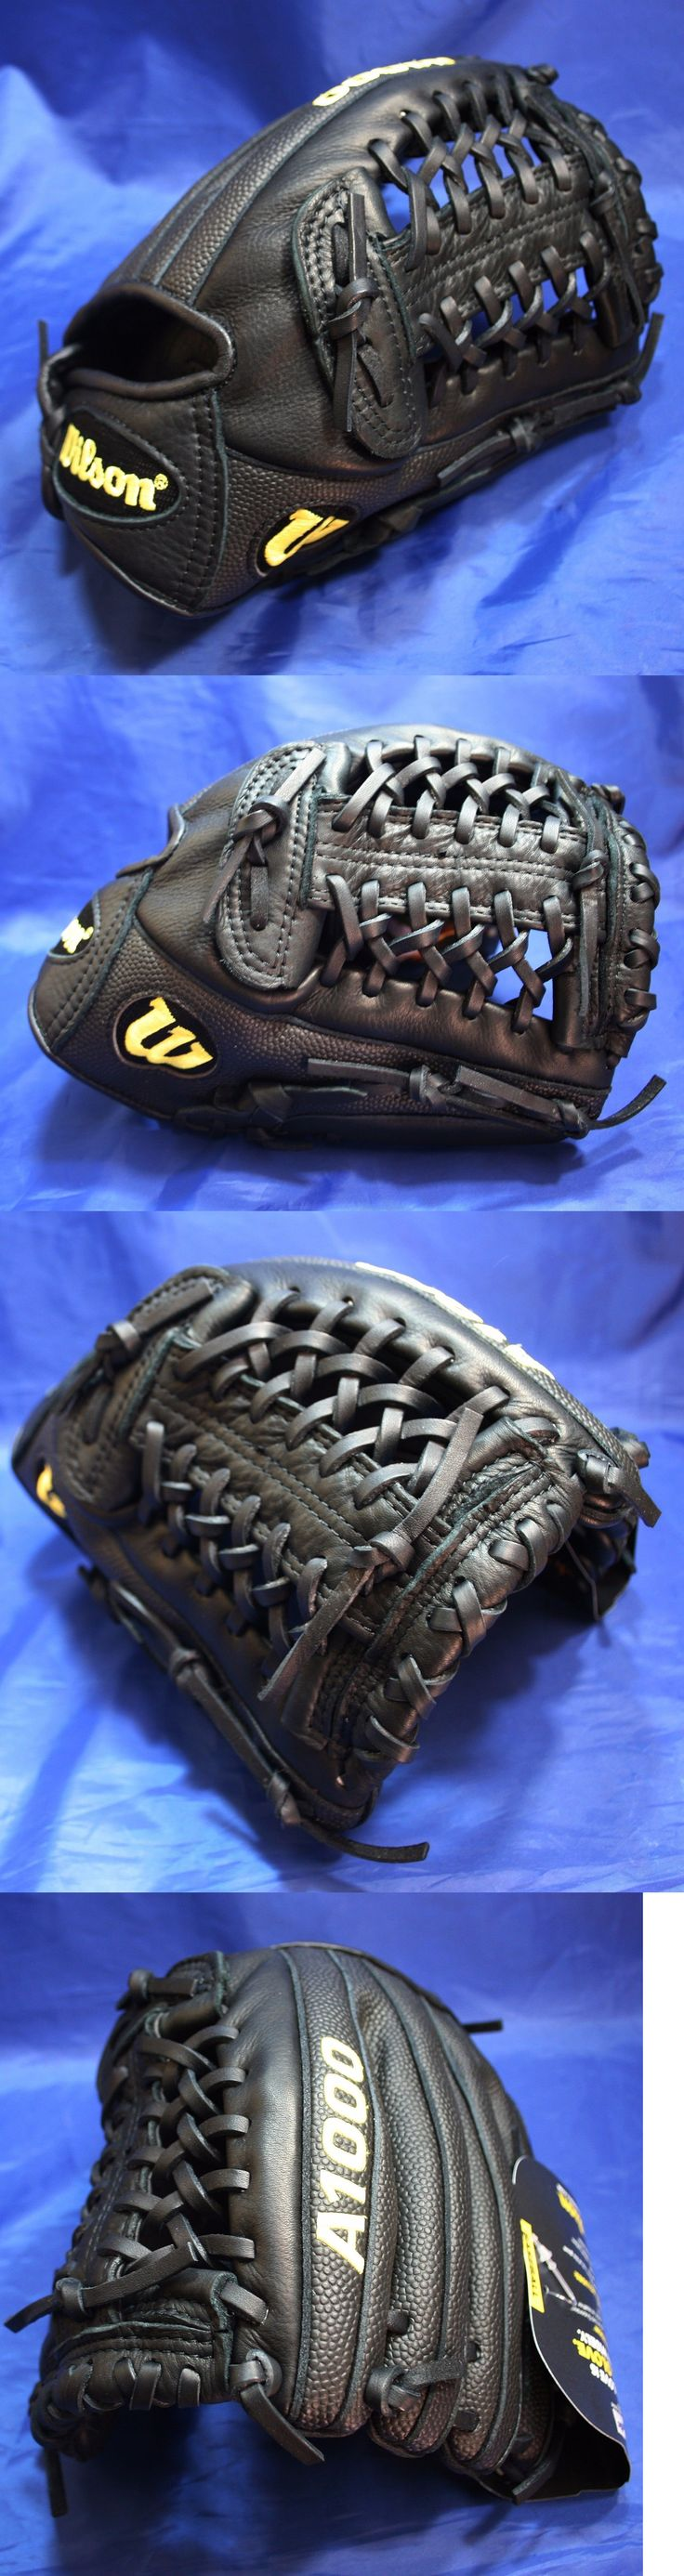 Gloves and Mitts 16030: Wilson A1000bbcjwss(12 ) Super Skin Baseball Glove(Right Handed Thrower) -> BUY IT NOW ONLY: $74.95 on eBay!